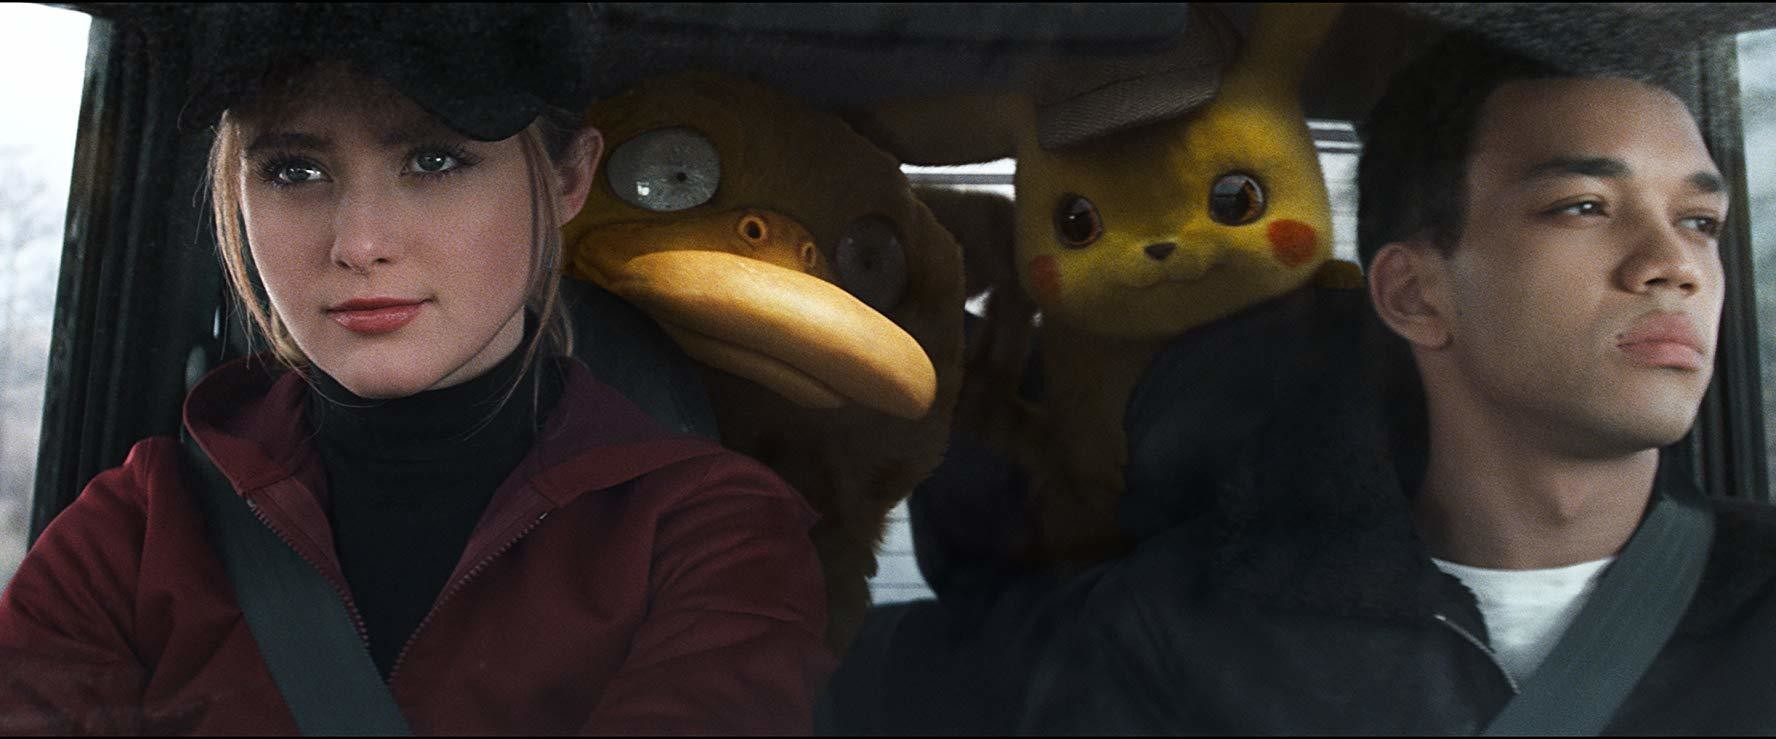 'Pokémon Detective Pikachu' Is Like 'Who Framed Roger Rabbit,' But Worse